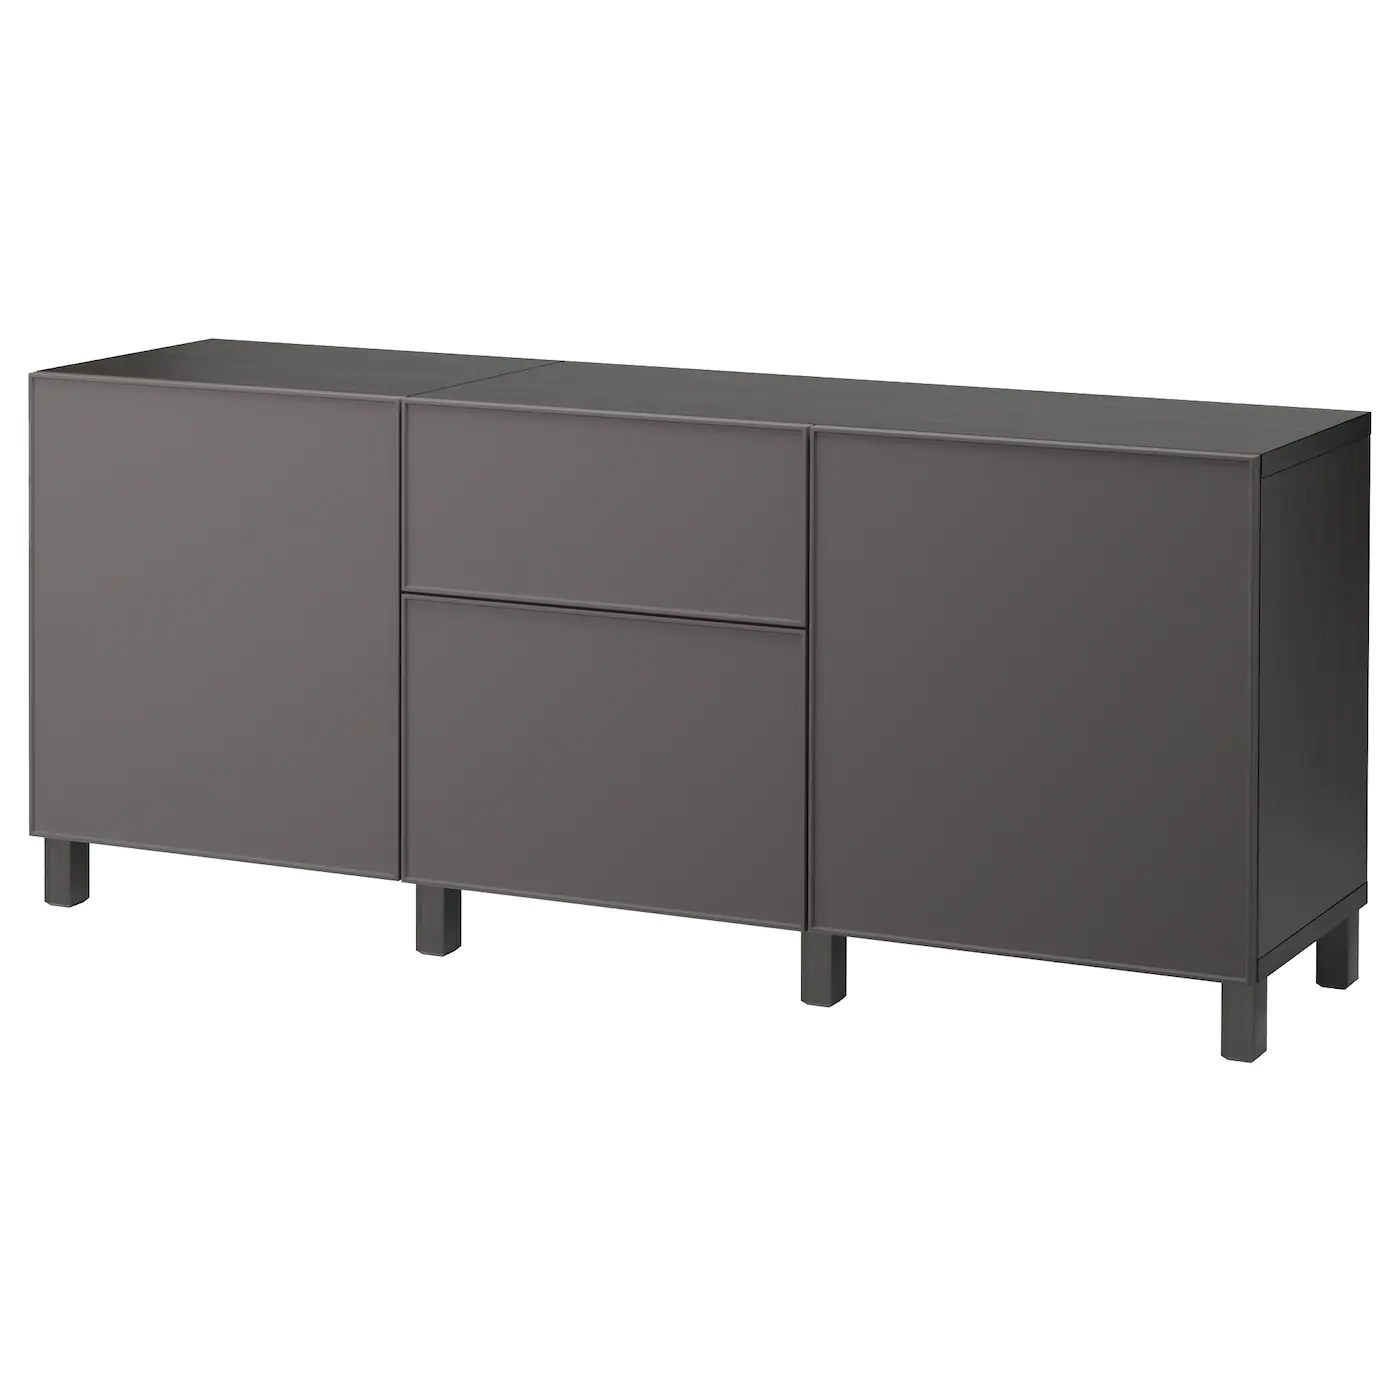 Ikea Kommode 60 X 120 BestÅ Storage Combination With Drawers Black Brown Grundsviken Dark Grey